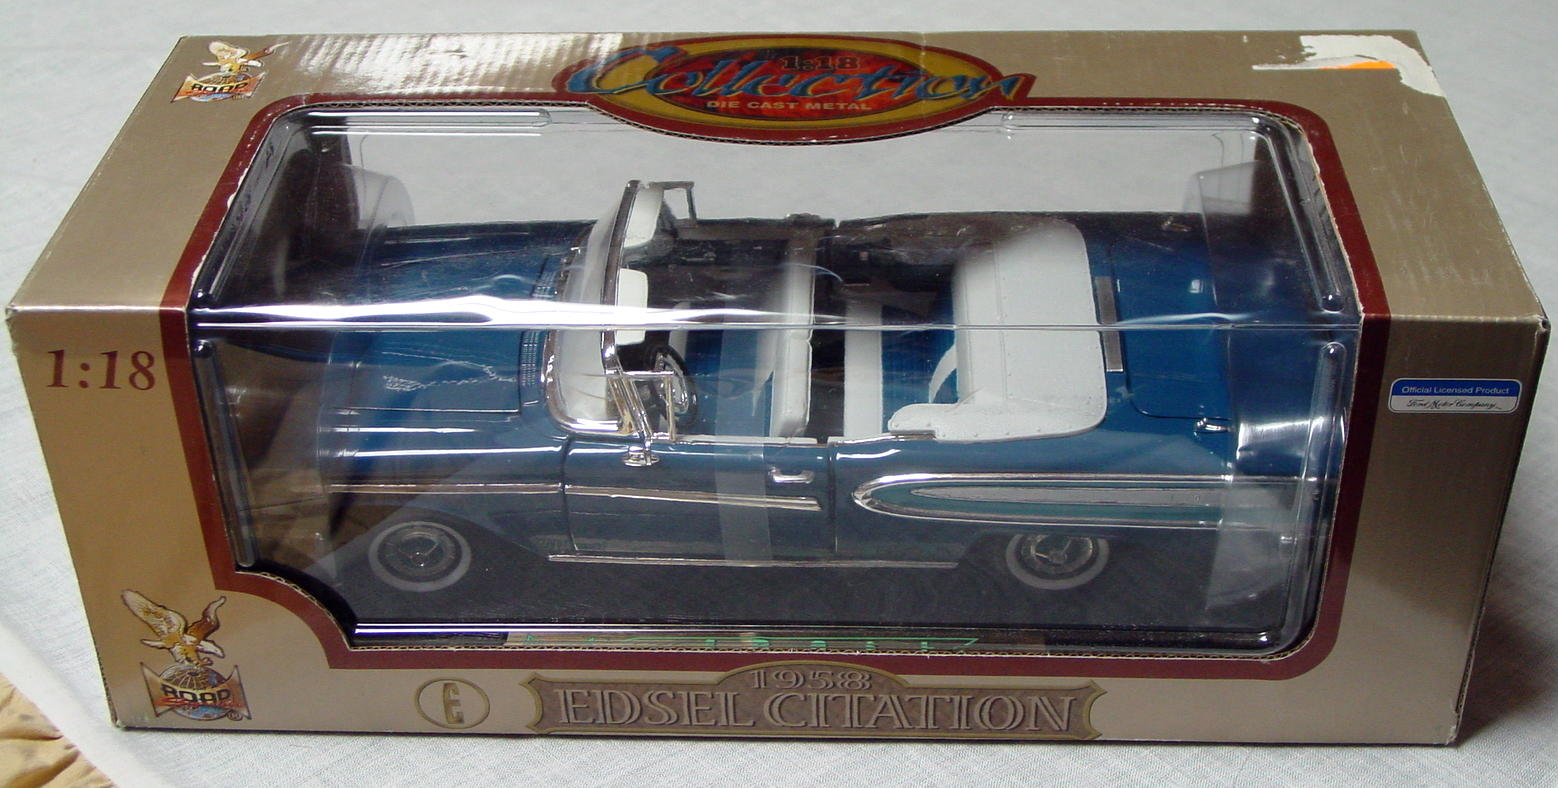 1_18 Scale - YATMING 58 Edsel Citation Conv Turquoise